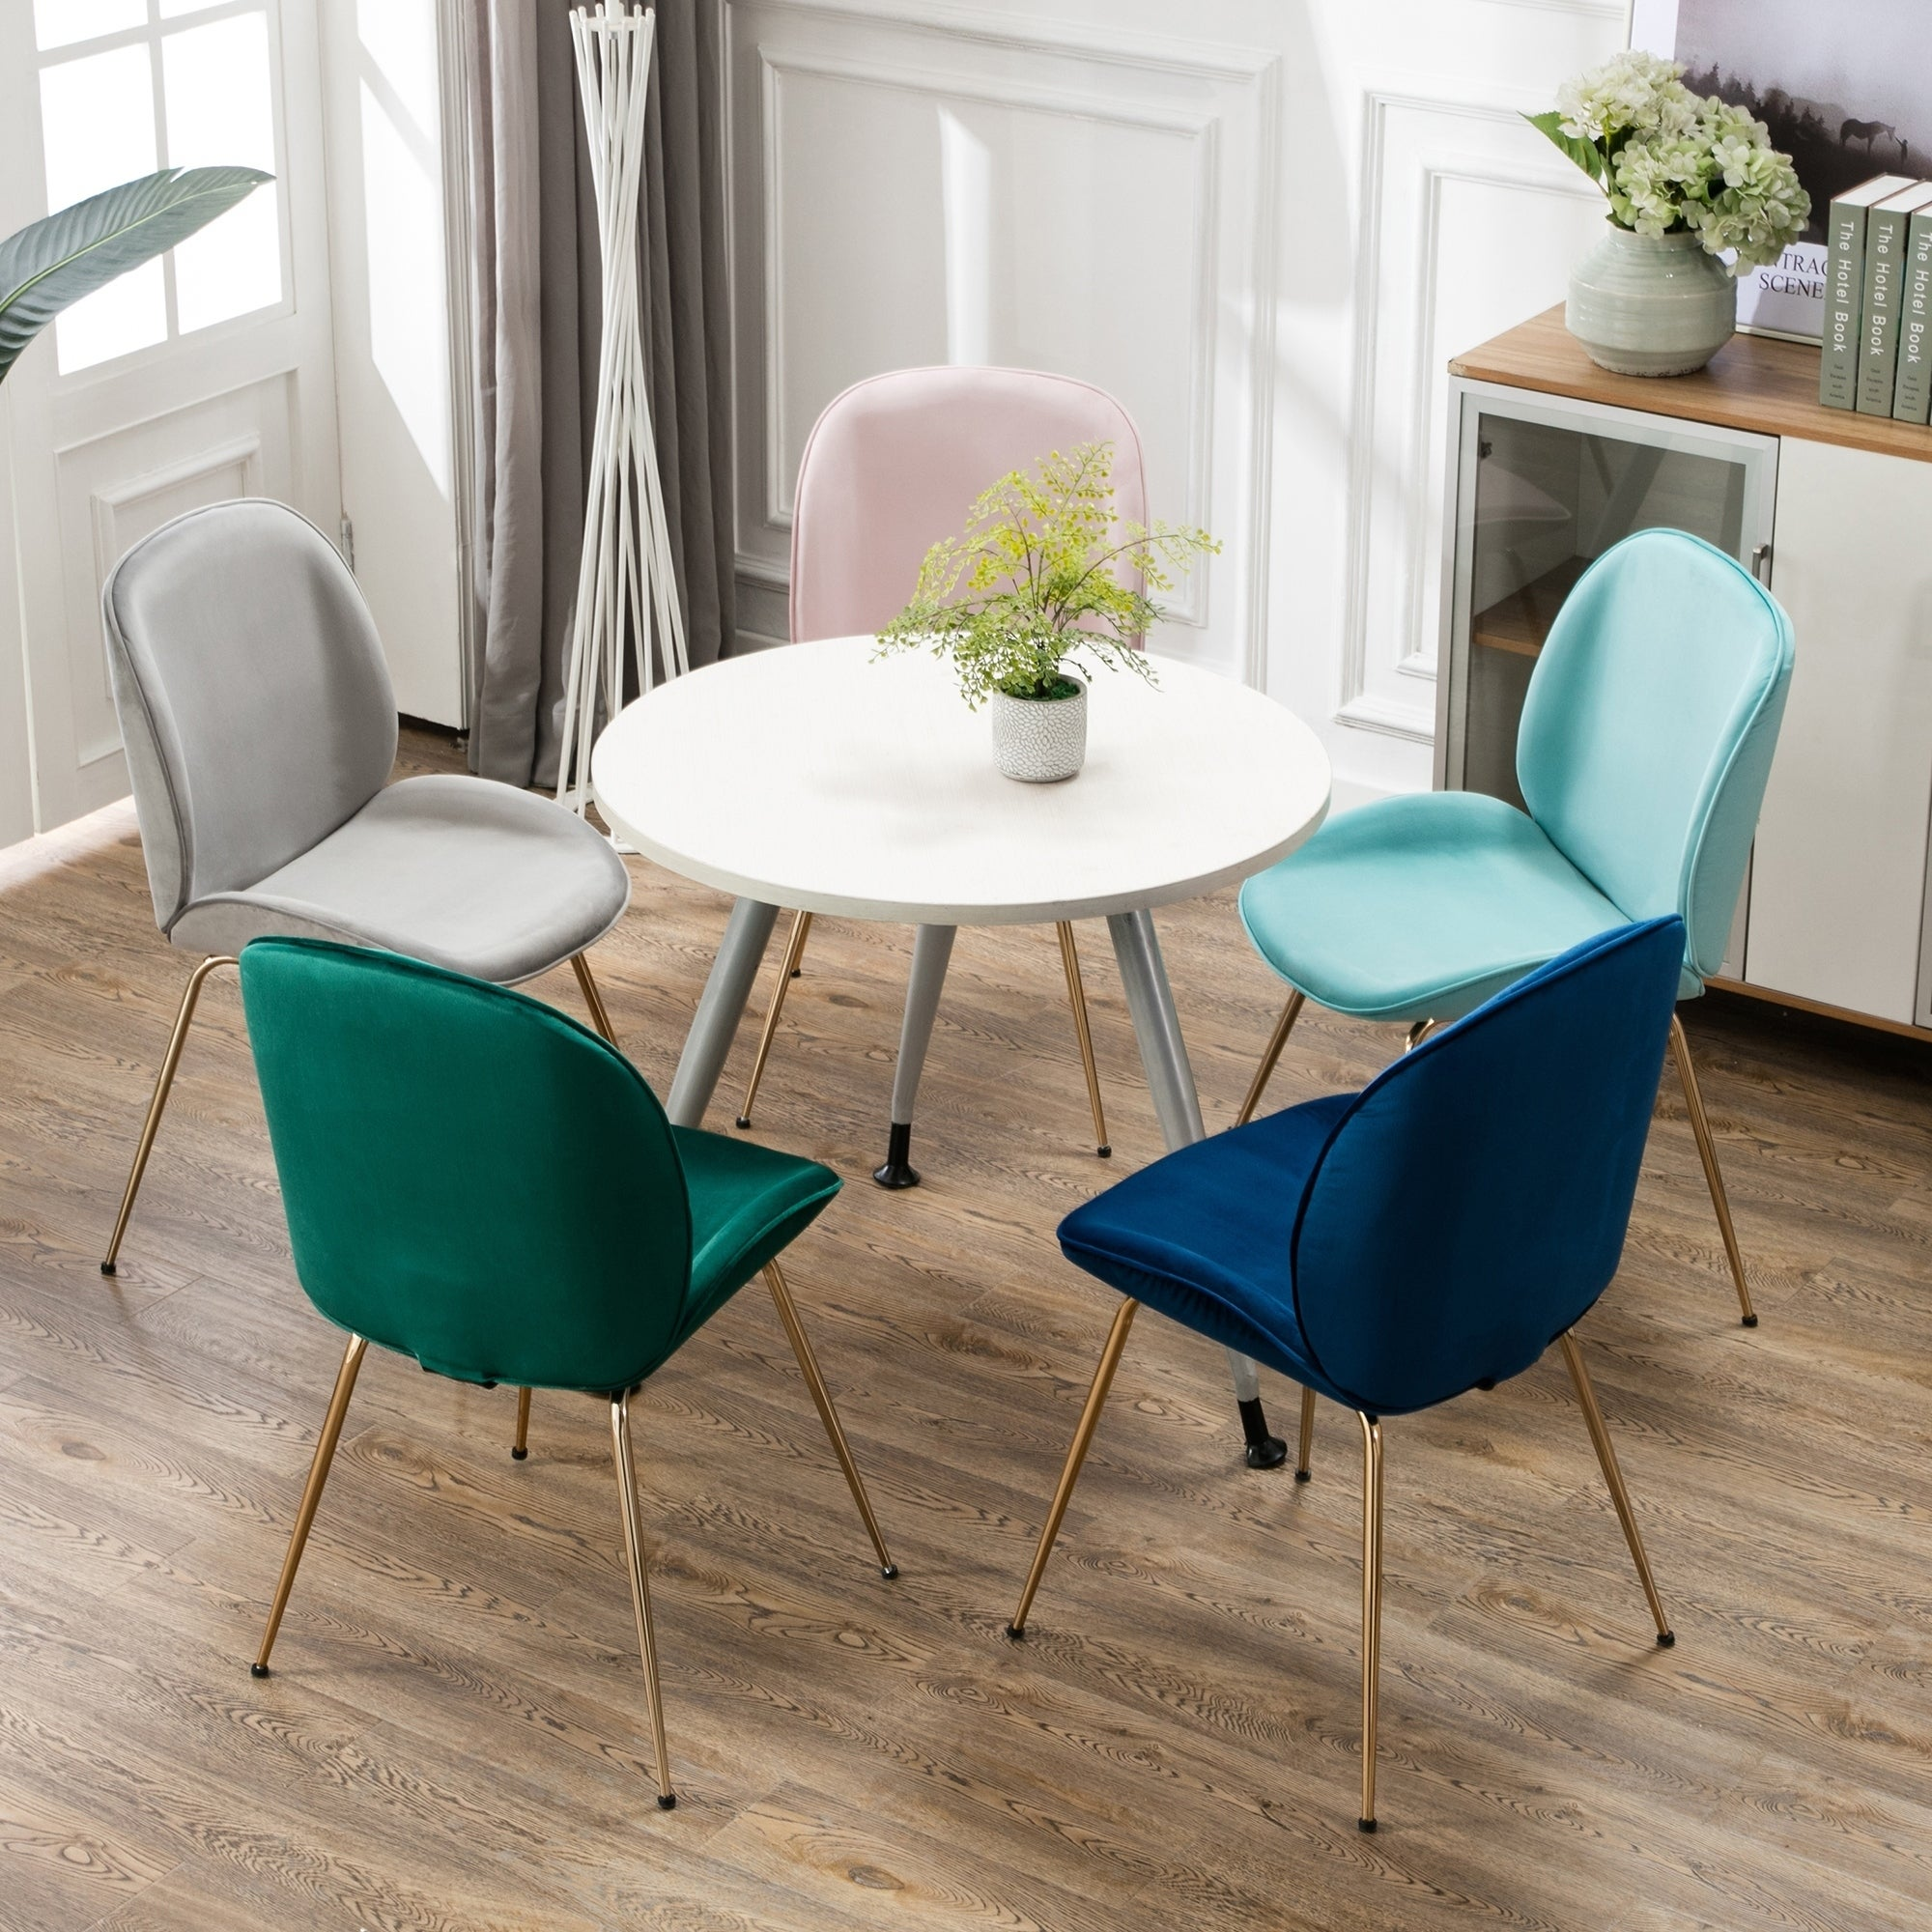 Beetle Design Velvet Dining Chair